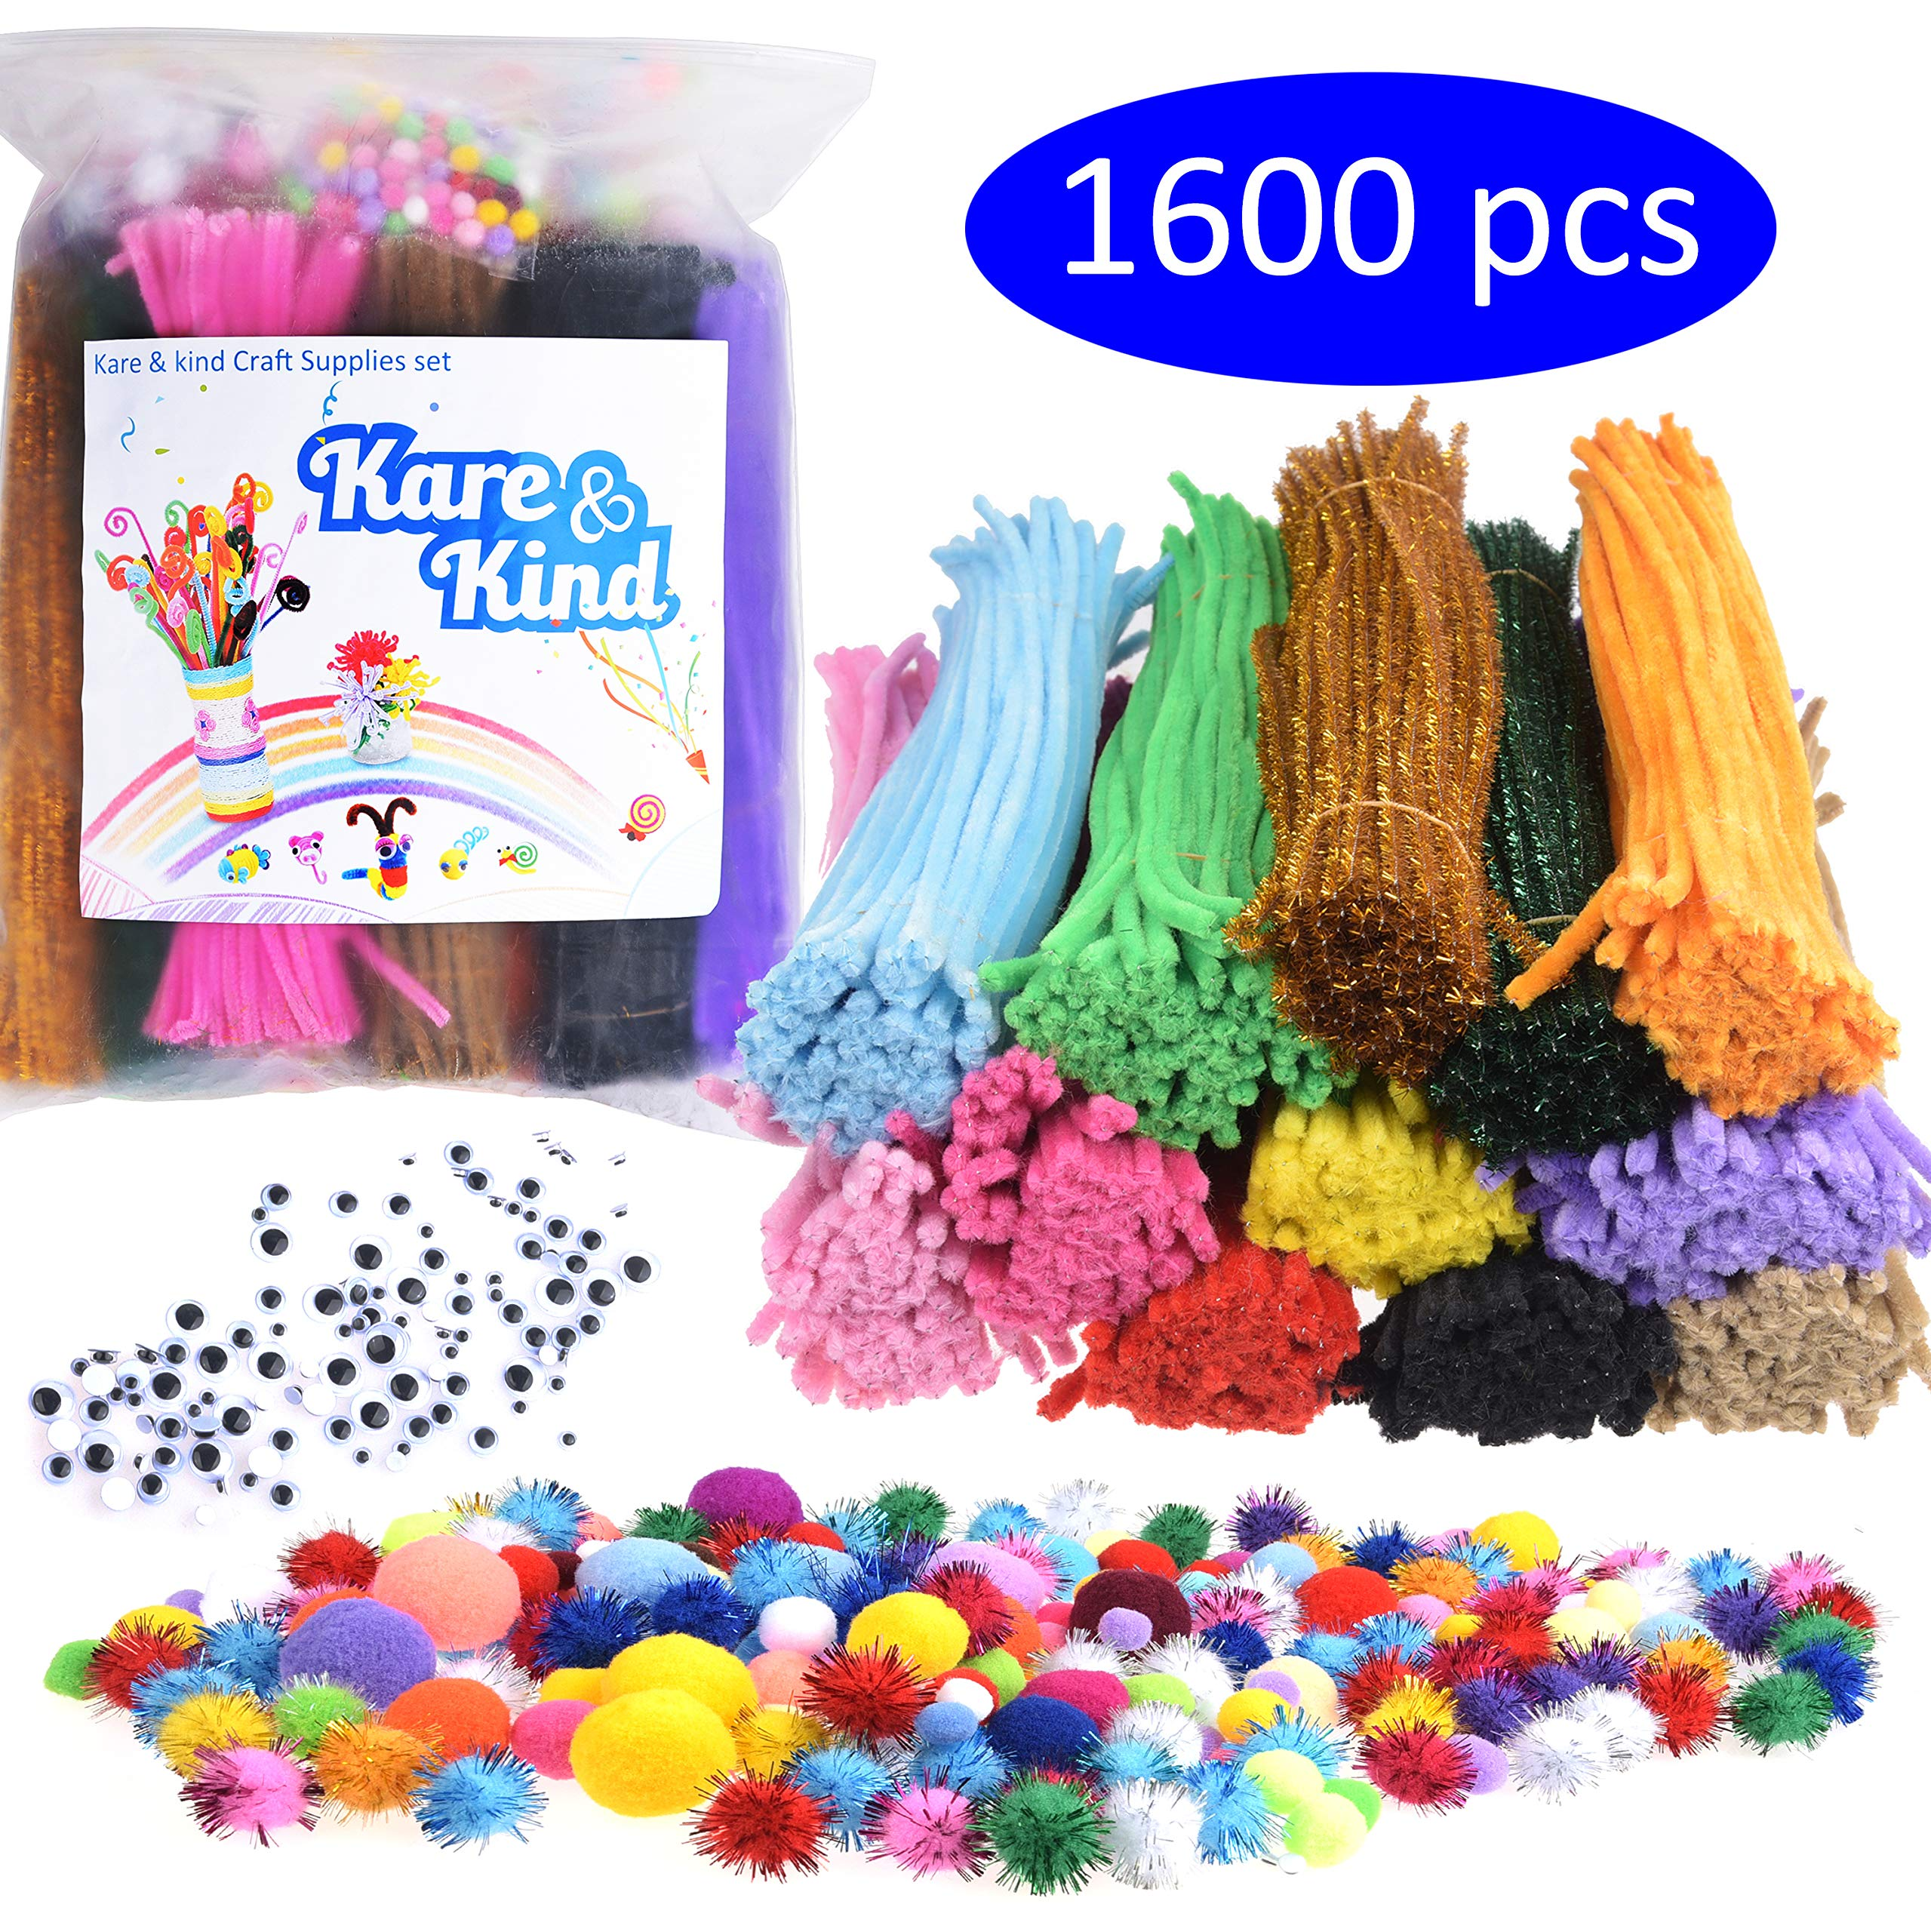 Kare & Kind Craft Supplies Set - 1600 pcs Art Materials - 1000 pcs Colored Pipe Cleaners; 200 pcs Glitter Pipe Cleaners; 200 pcs Colored Pom Poms; 50 pcs Glitter Pom Poms; 150 pcs Wiggle Googly Eyes by Kare Kind